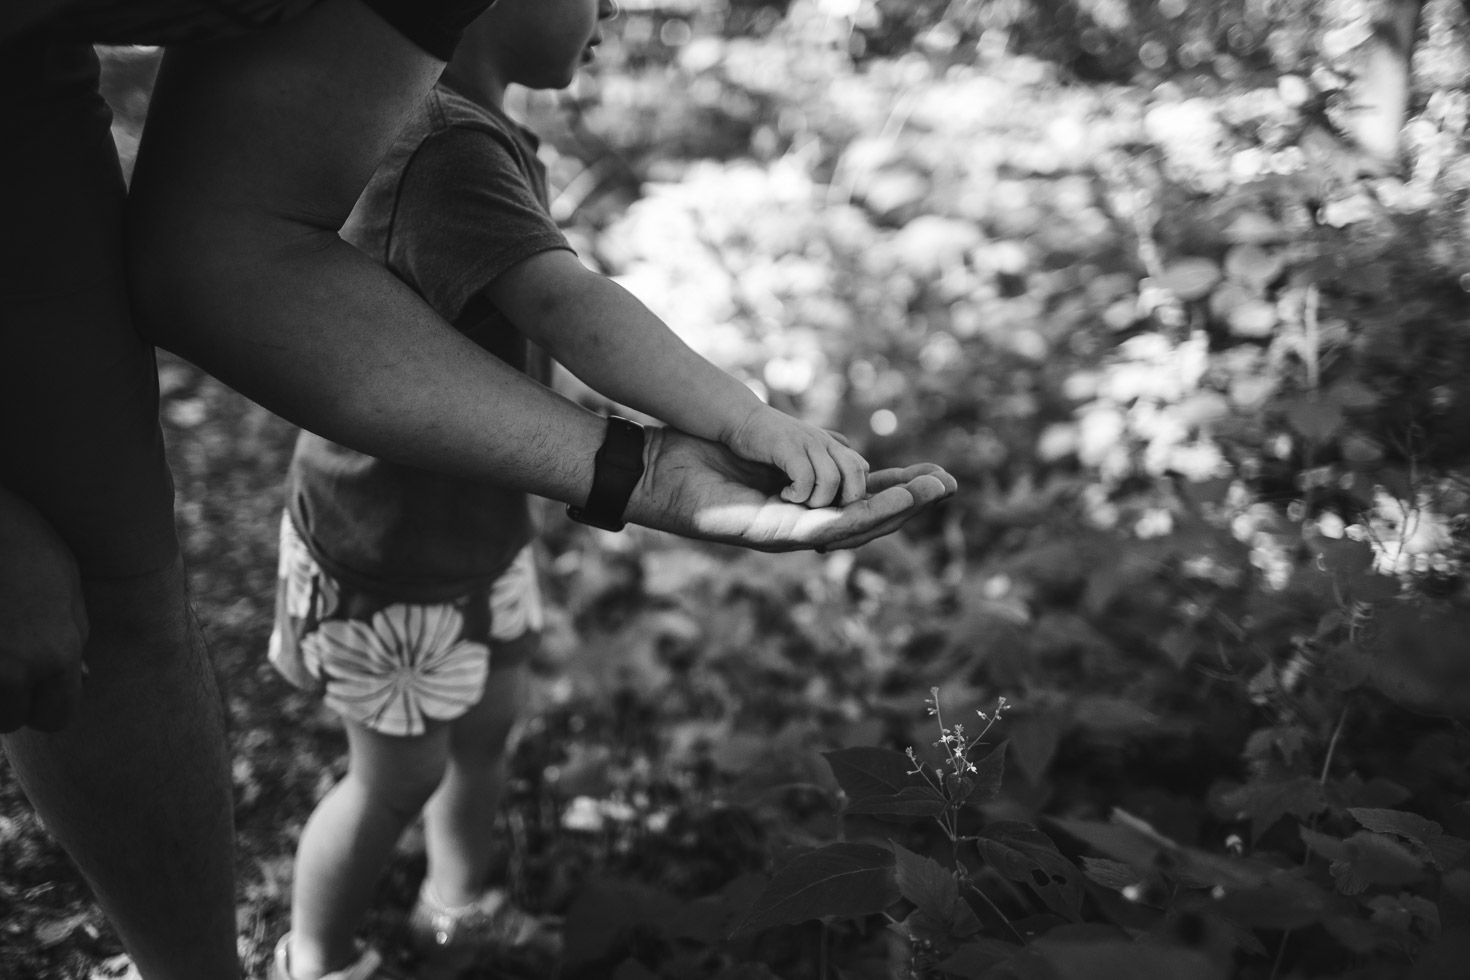 Child taking blackberries from father's hands